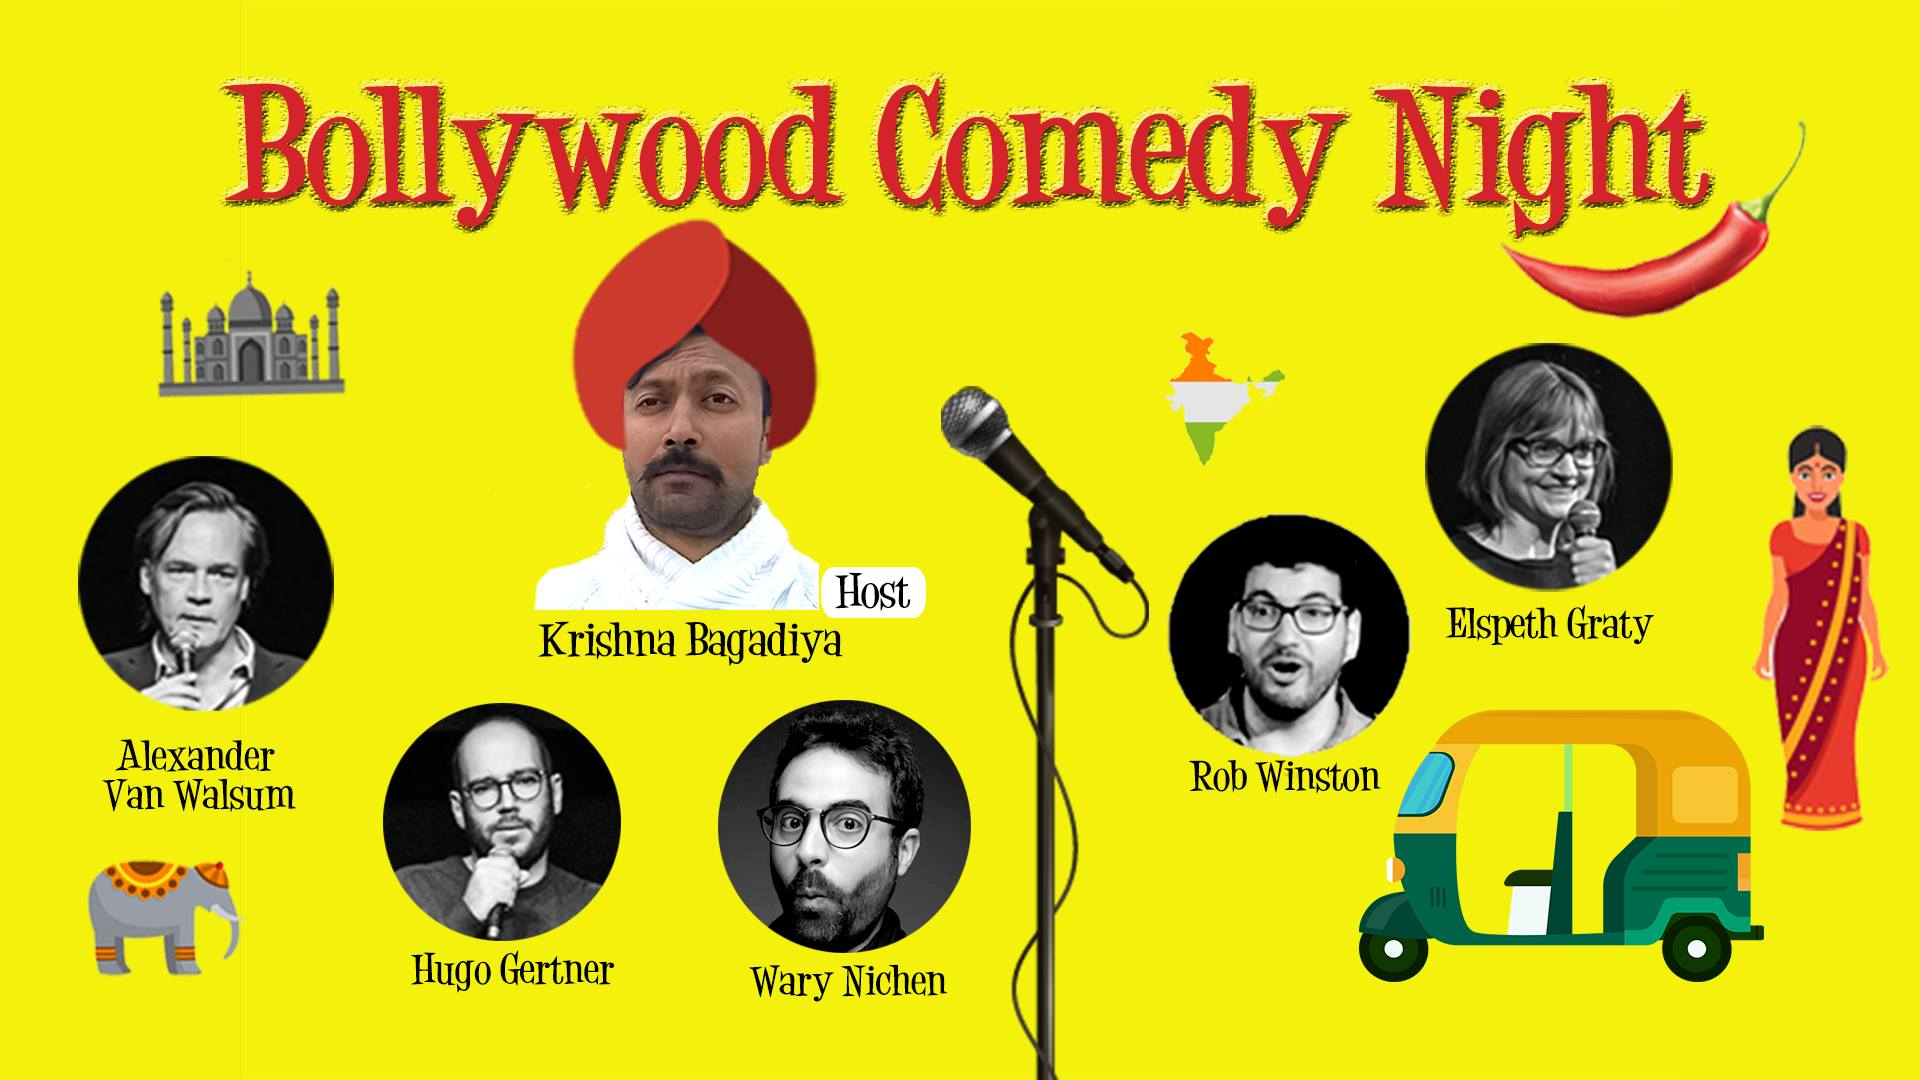 Retour du Bollywood Comedy Night le 16 novembre, Paris Place du Tertre